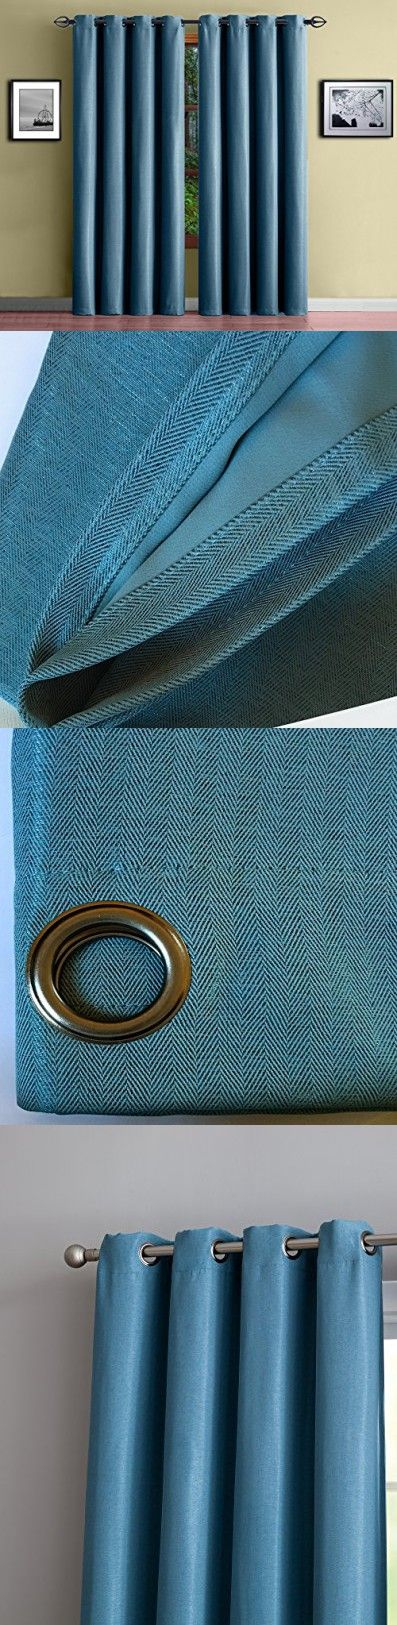 """Warm Home Designs 1 Panel of Blue Teal Insulated Blackout Curtains with Grommet Top. Extra Wide, Energy Saving, Room Darkening Thermal Window Drapes are 54"""" X 84"""" Inches In Size. Teal 84"""